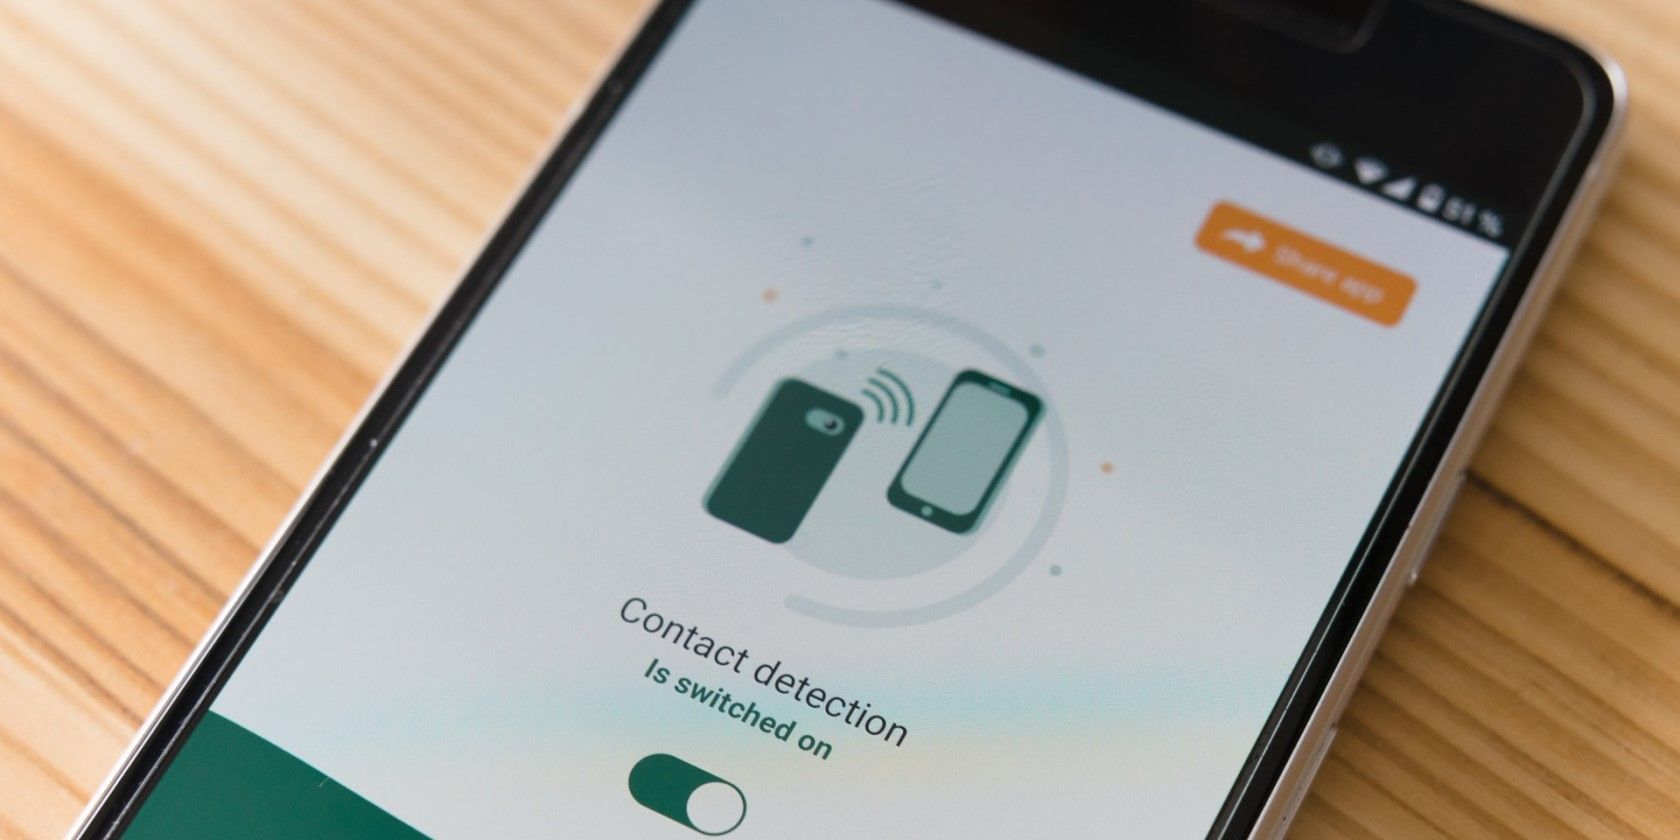 Google Sneakily Installed COVID Tracking App on Androids